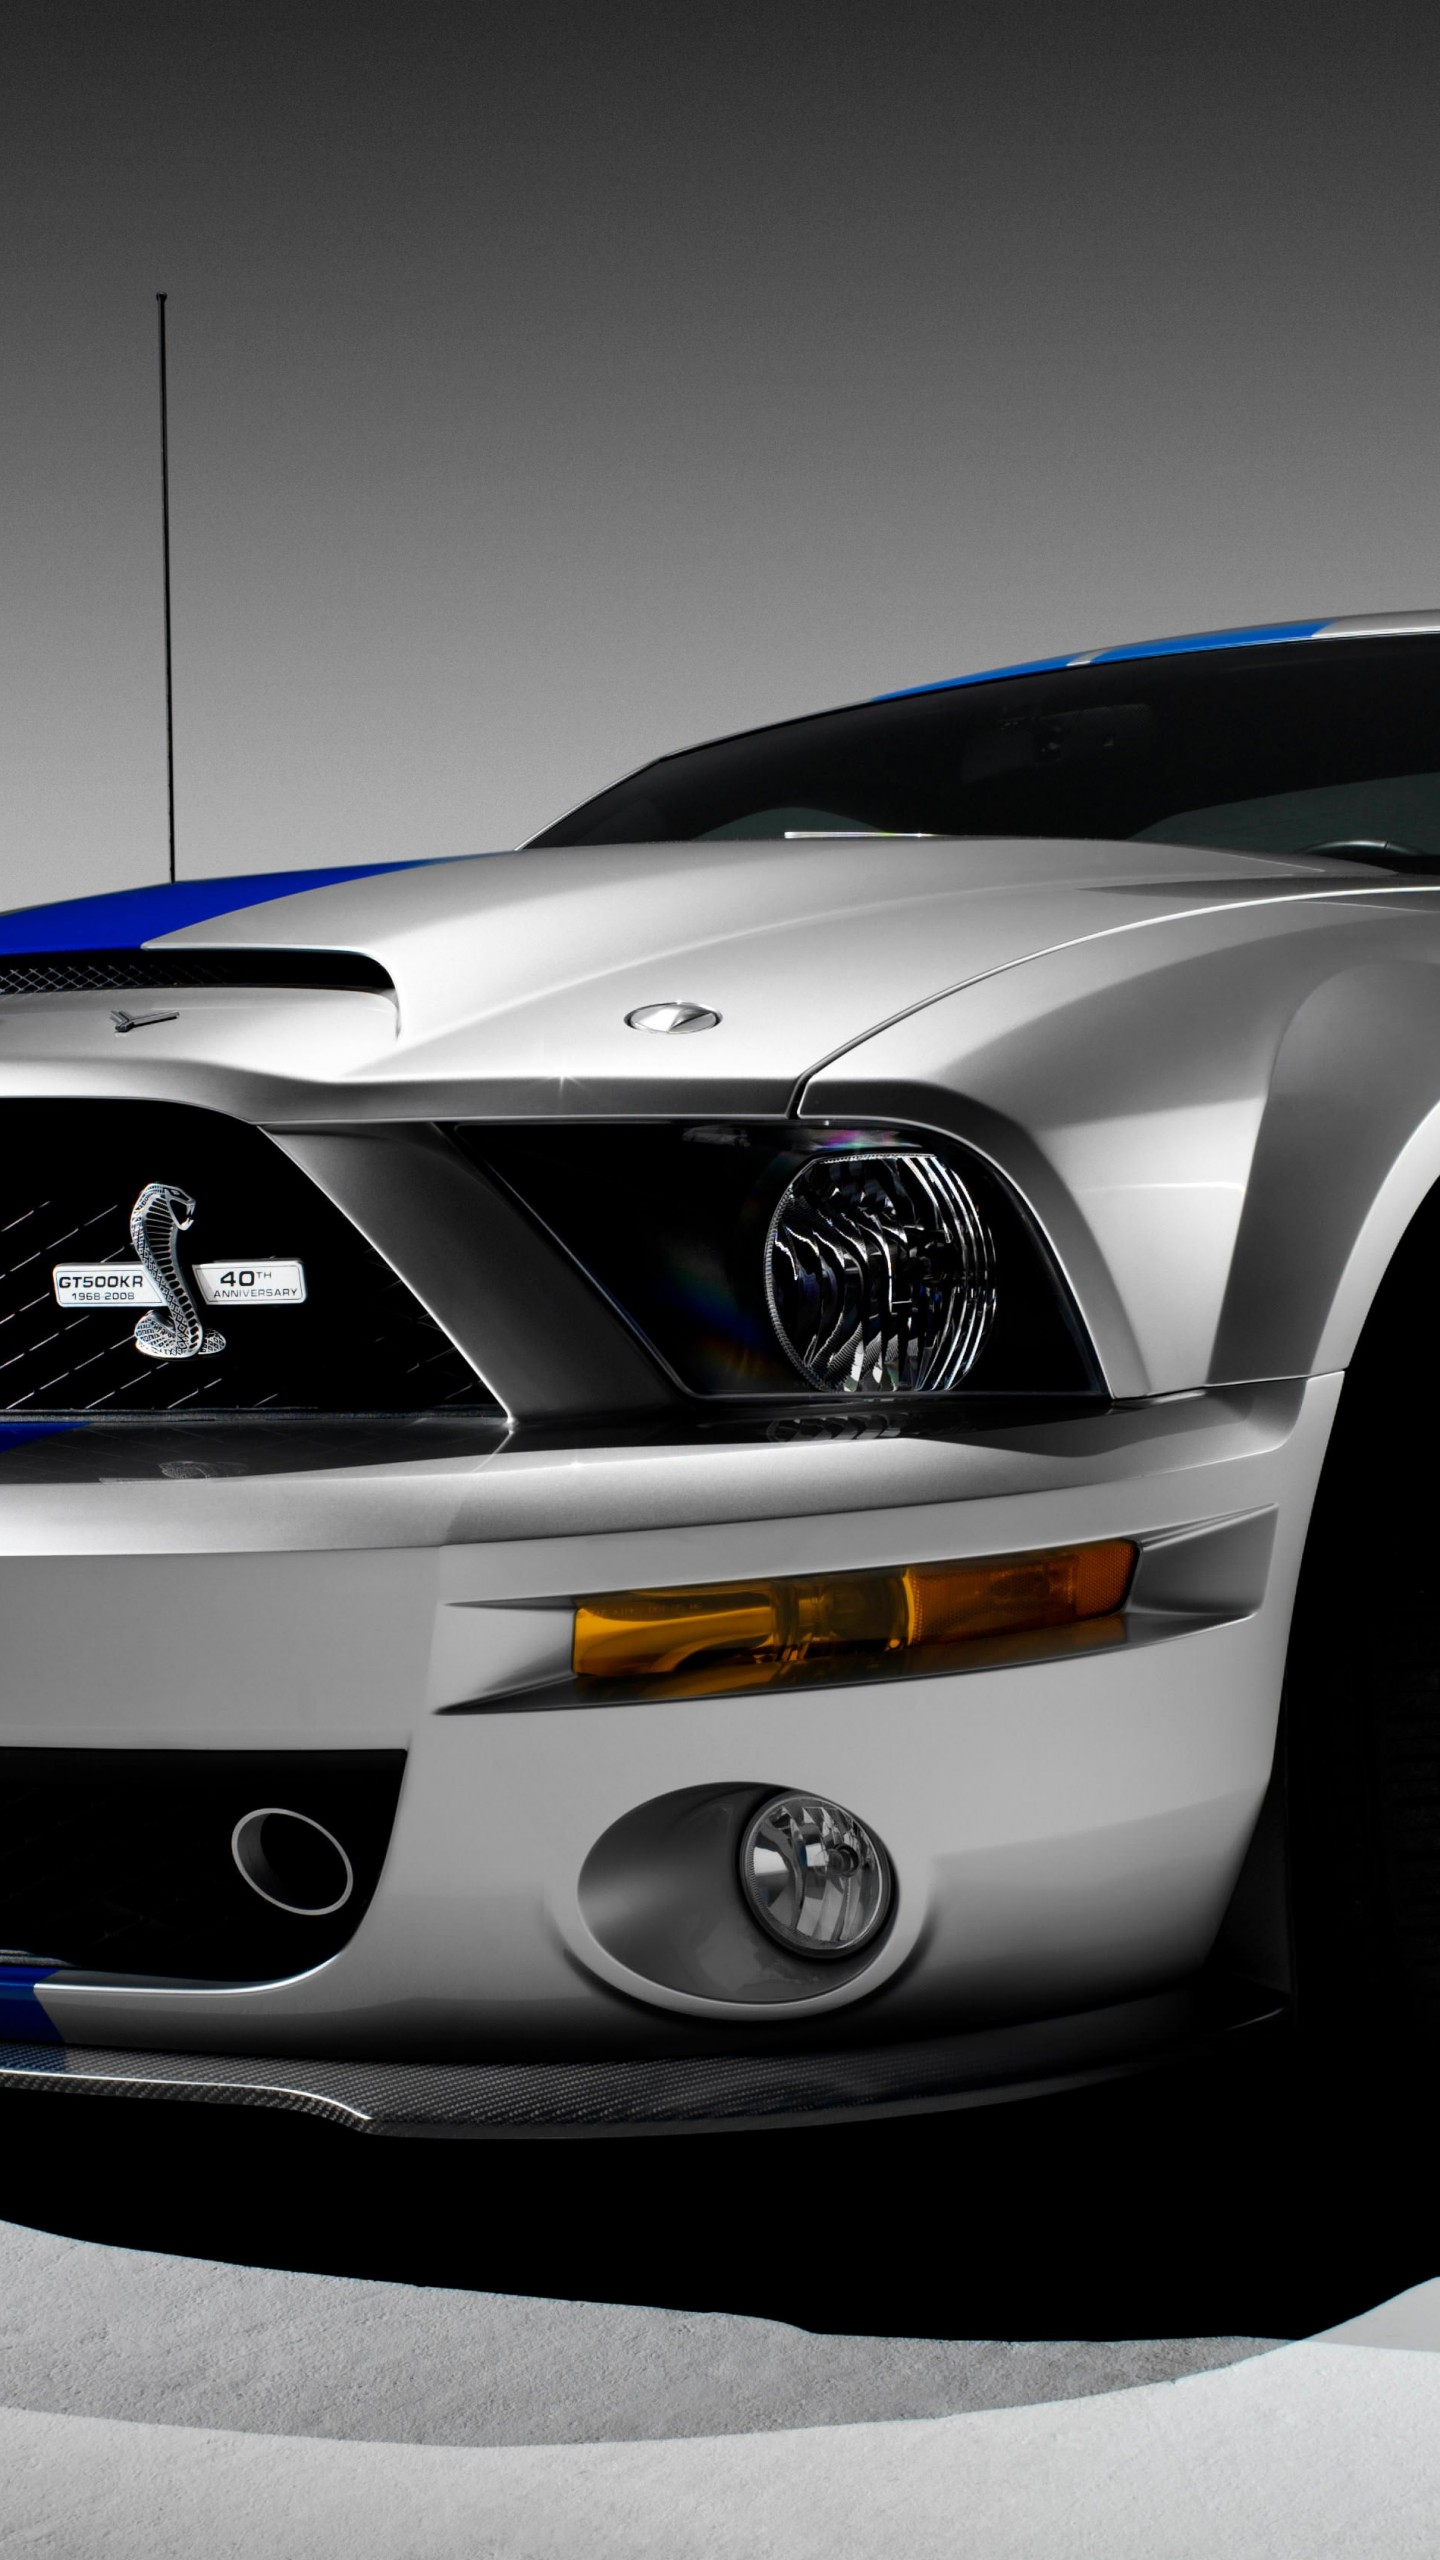 Download Shelby Mustang Gt500kr Hd Wallpaper For G3